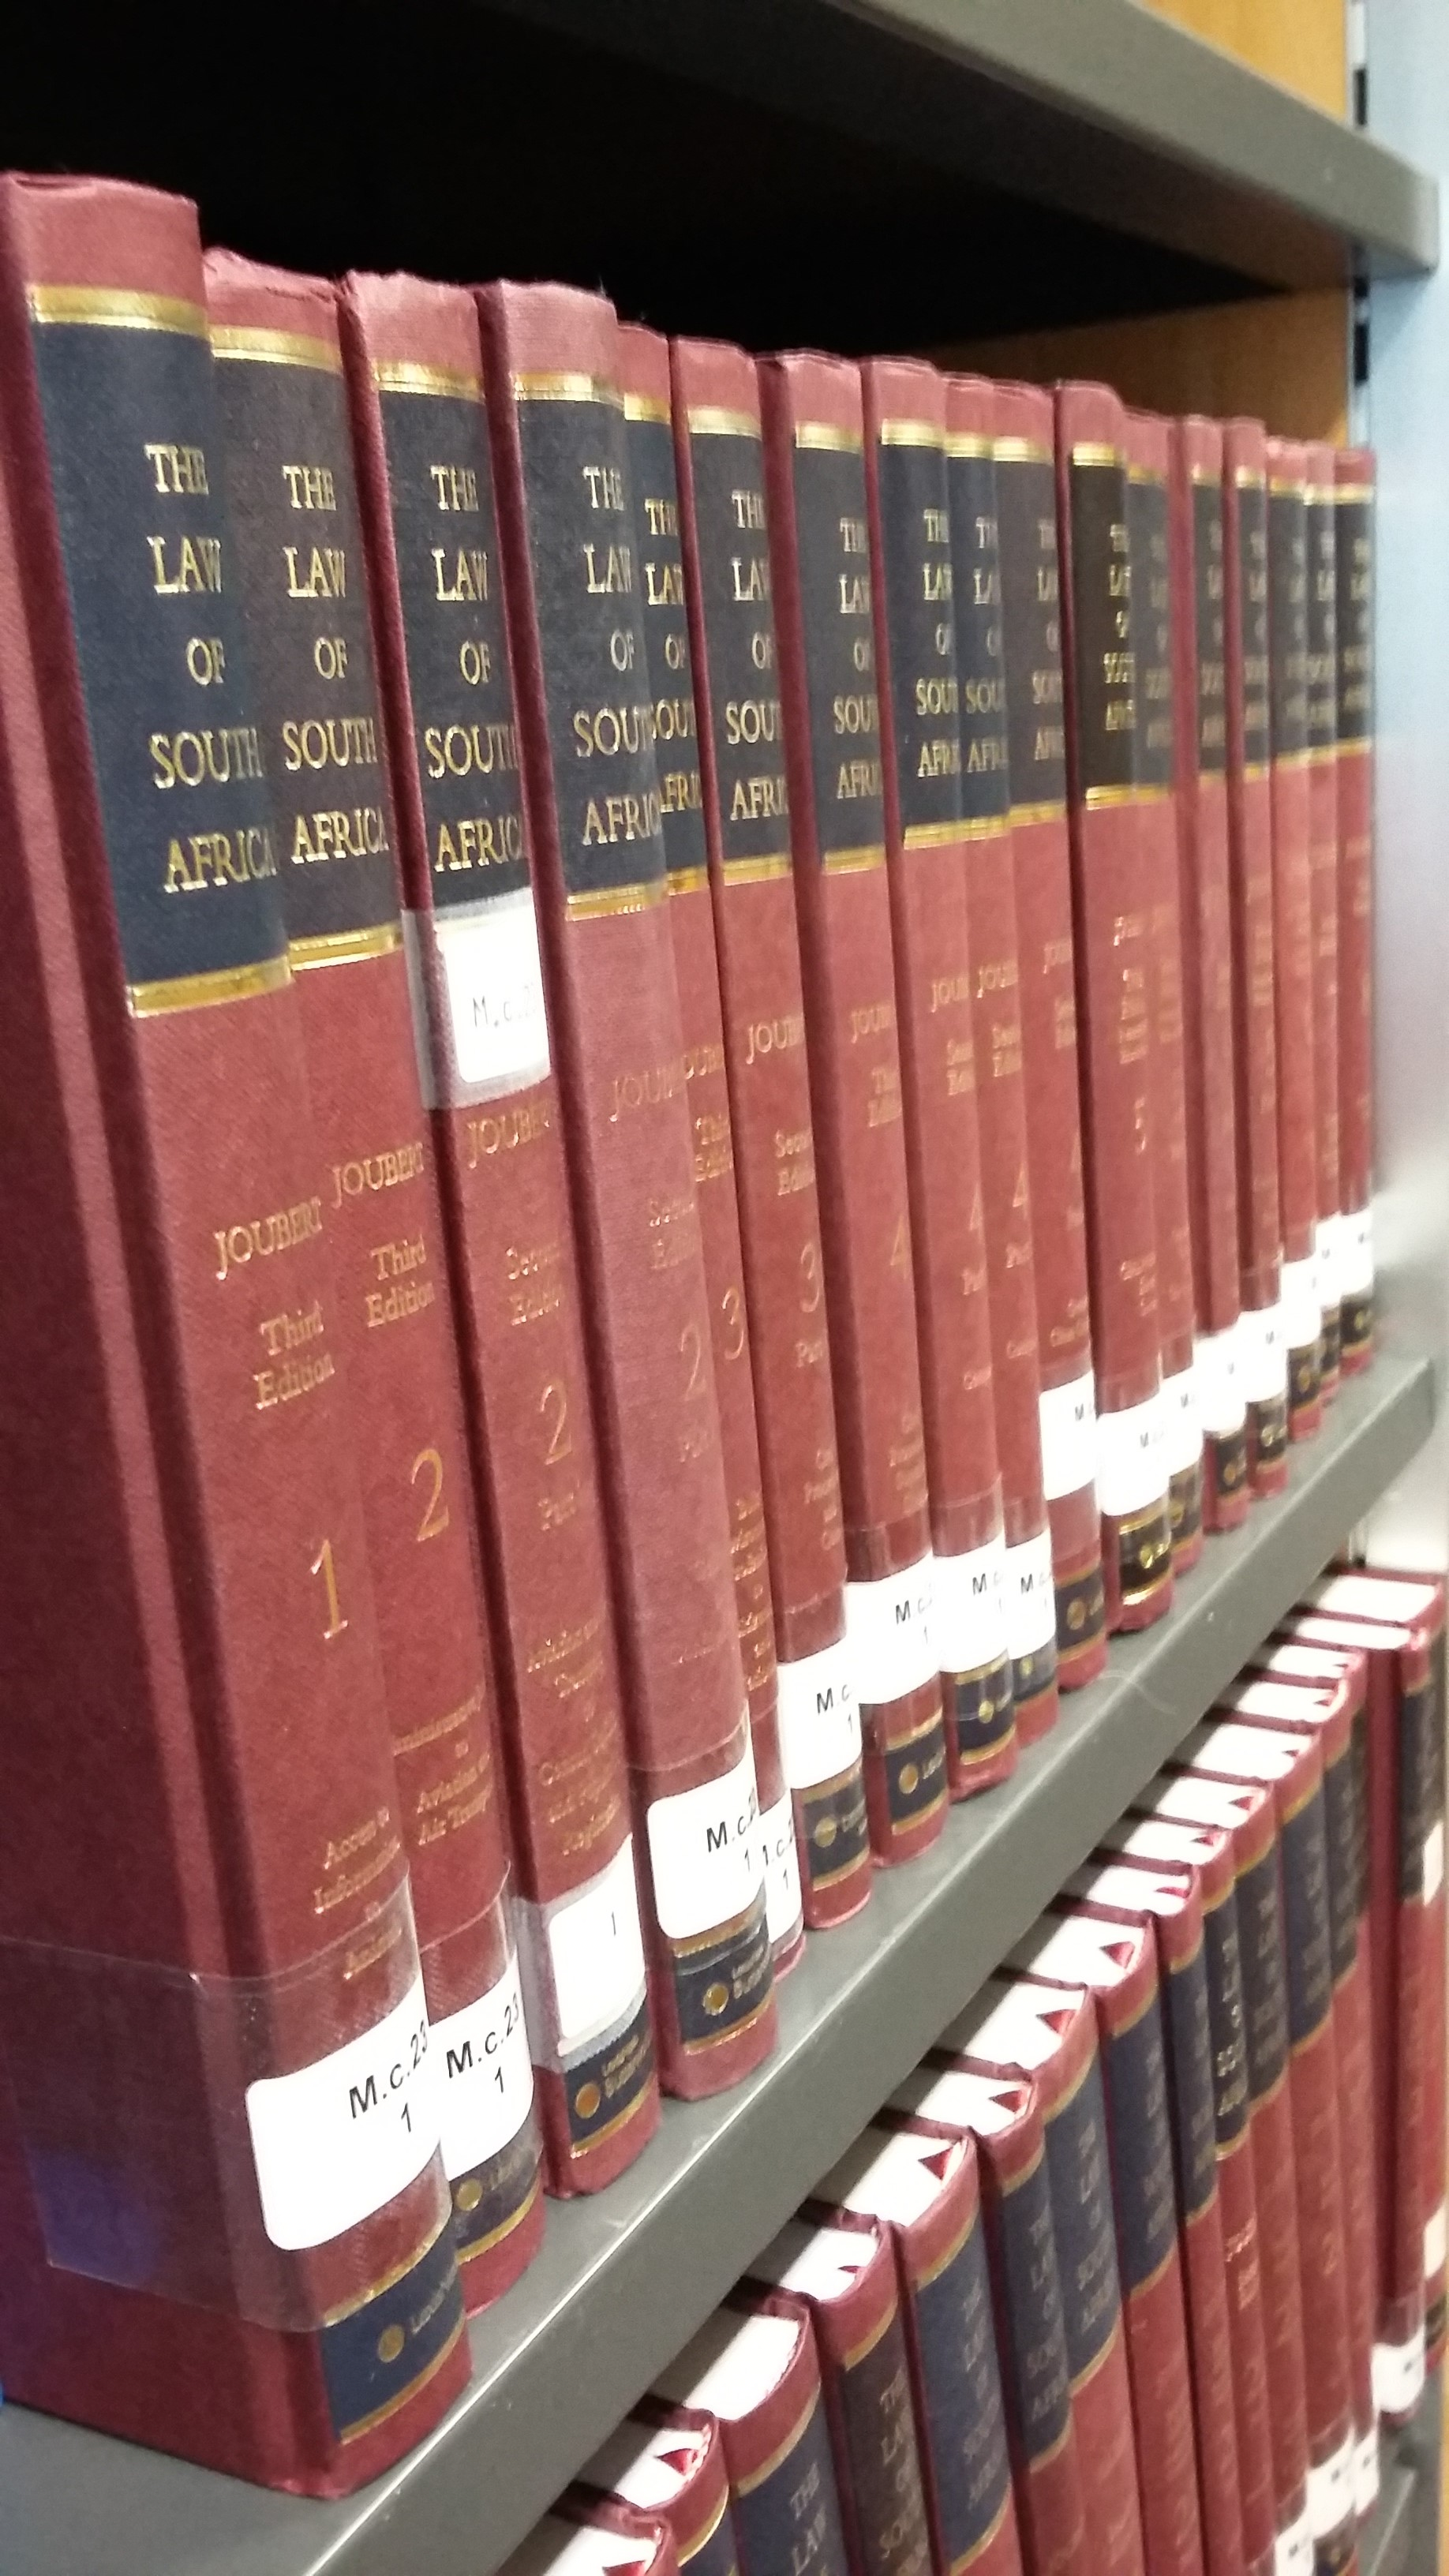 Photo of the red and black volumes with gold lettering of the Law of South Africa on shelves in the Squire Law Library.